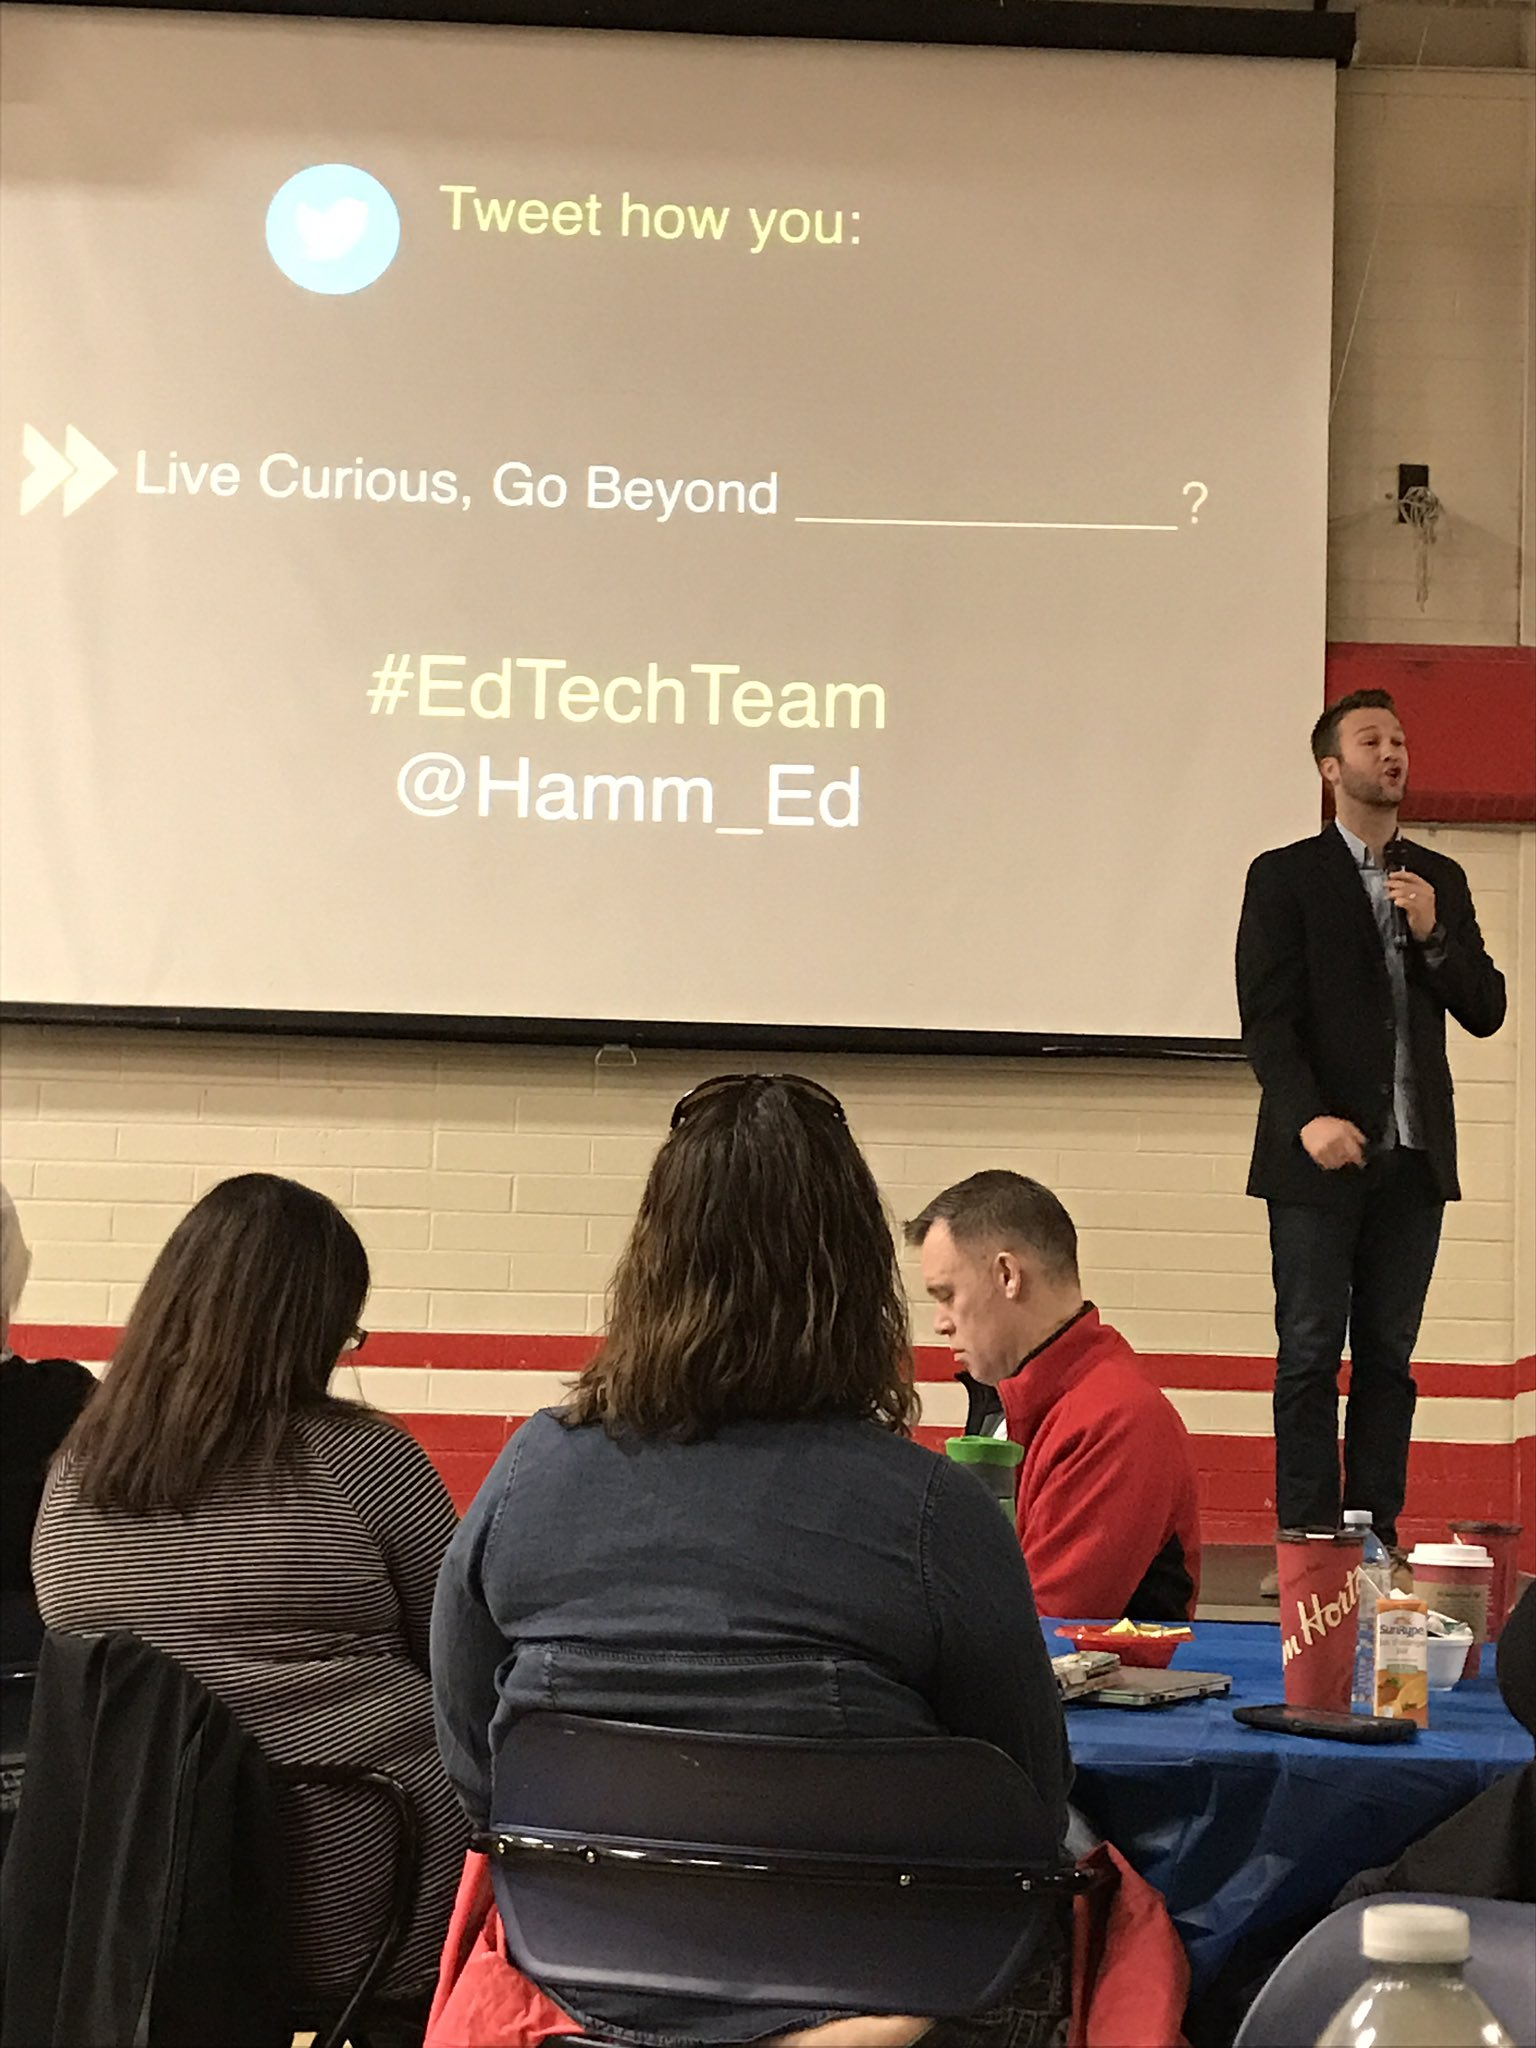 Morning keynote at Lethbridge gafe @Hamm_Ed @edtechteam https://t.co/6m0gOFjdHl